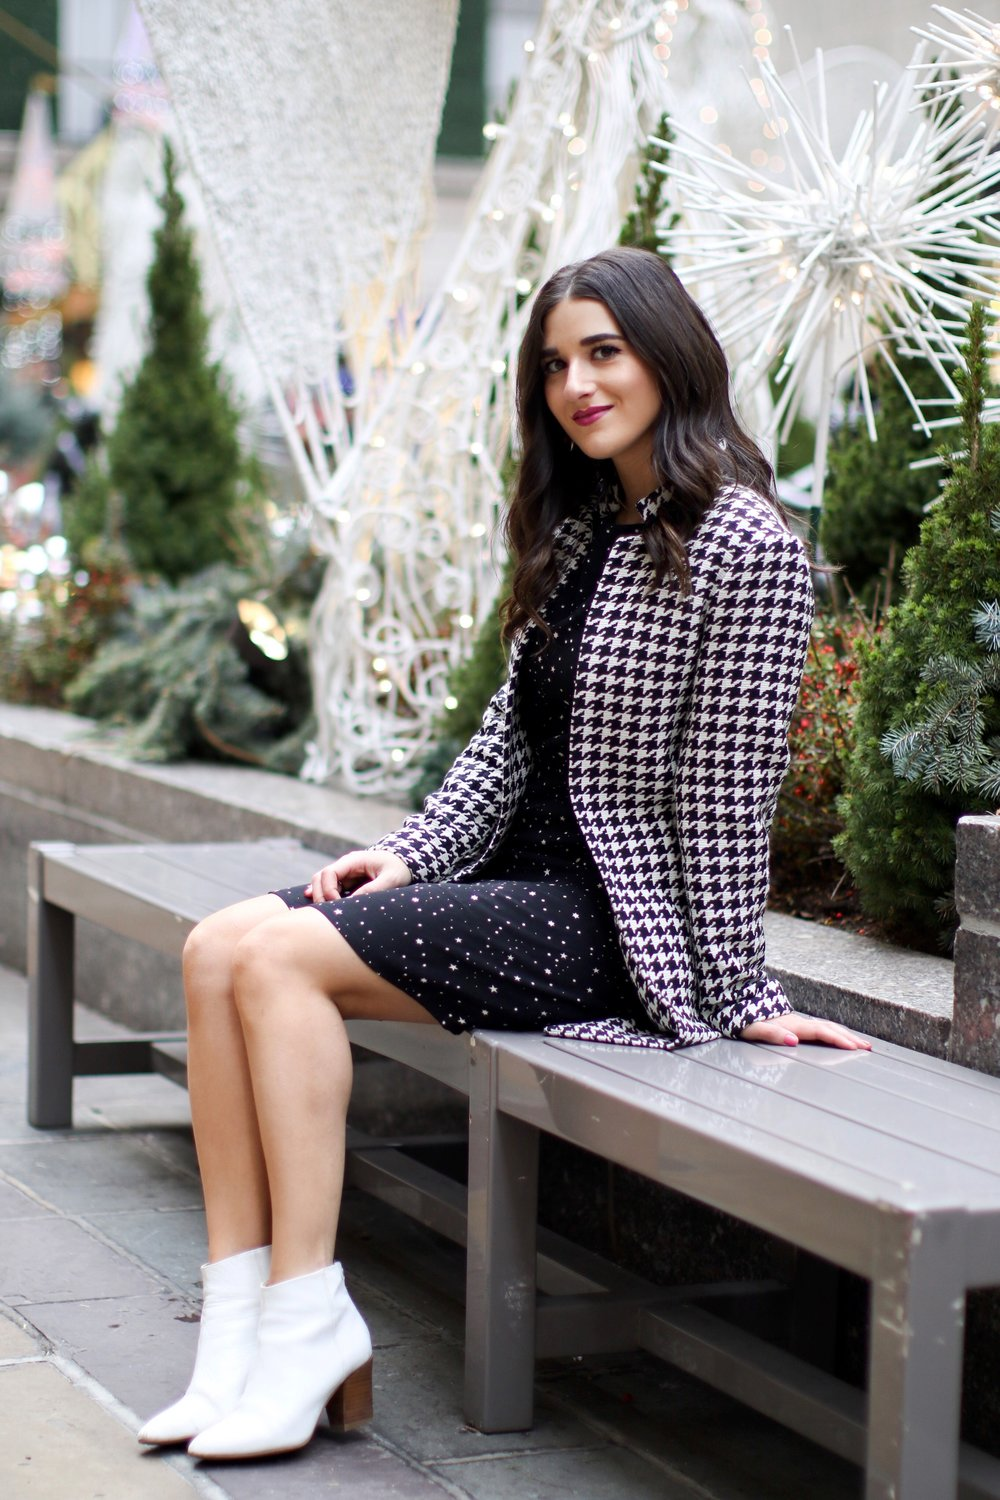 Houndstooth Coat White Booties The Pros And Cons Of Freelancing Esther Santer Fashion Blog NYC Street Style Blogger Outfit OOTD Trendy Holiday Season New York City Photoshoot Pretty Hair Black Star Dress Cute Shoes H&M Zara Girl Women Winter Wear Shop.jpg